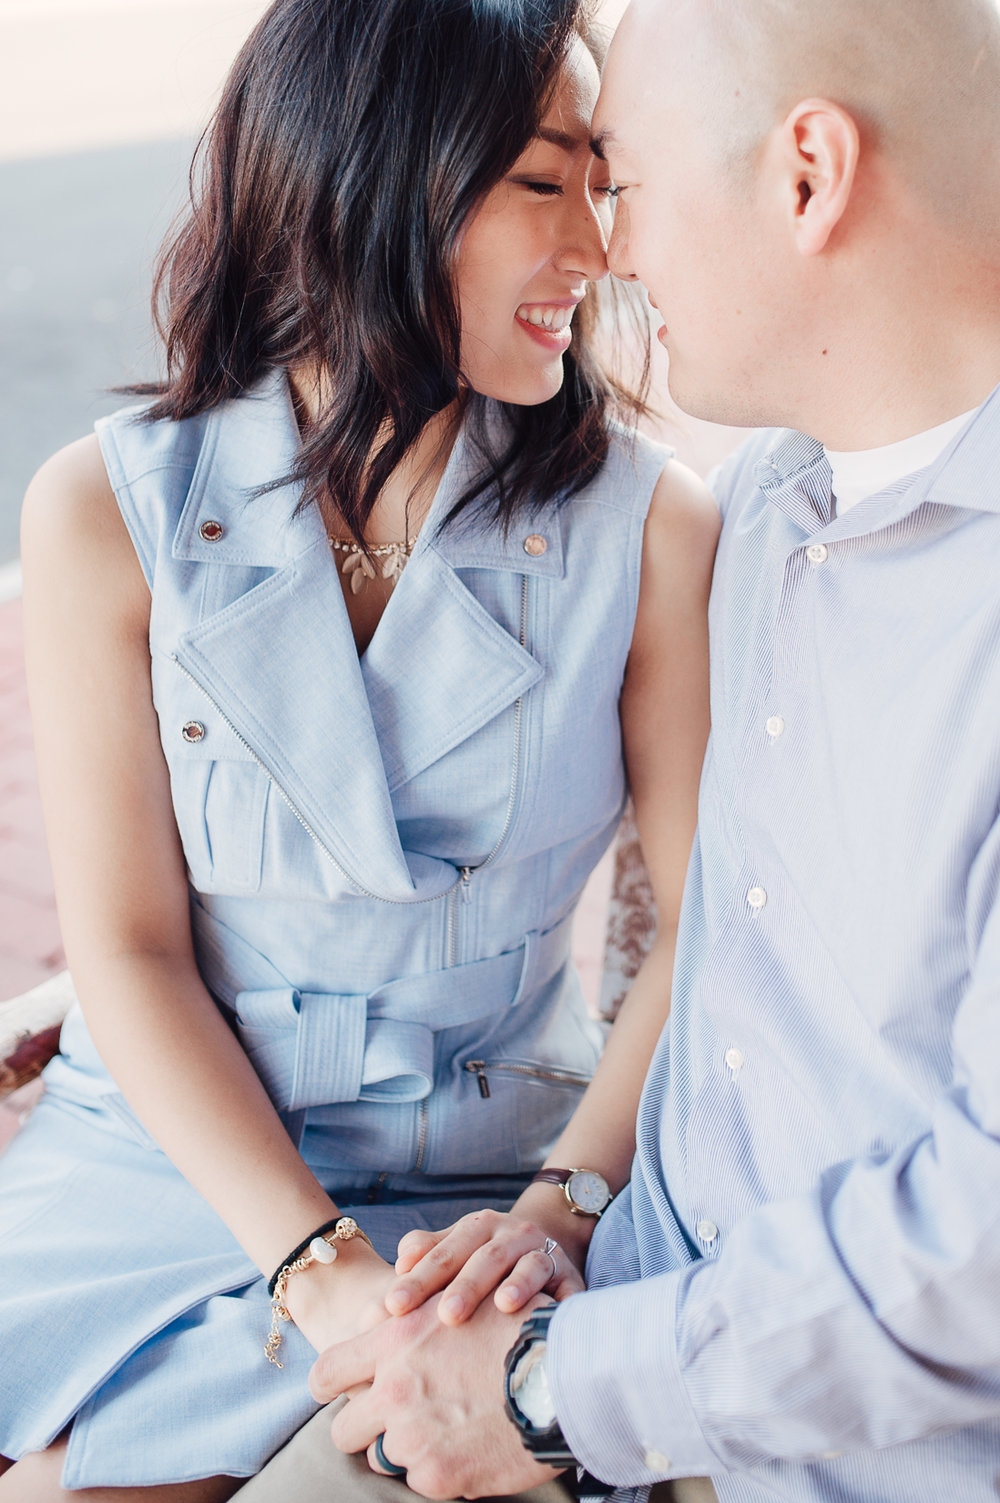 engagement_downtown_fredericksburg_virginiaweddingphotographer_youseephotography_HelenPaul (16).jpg